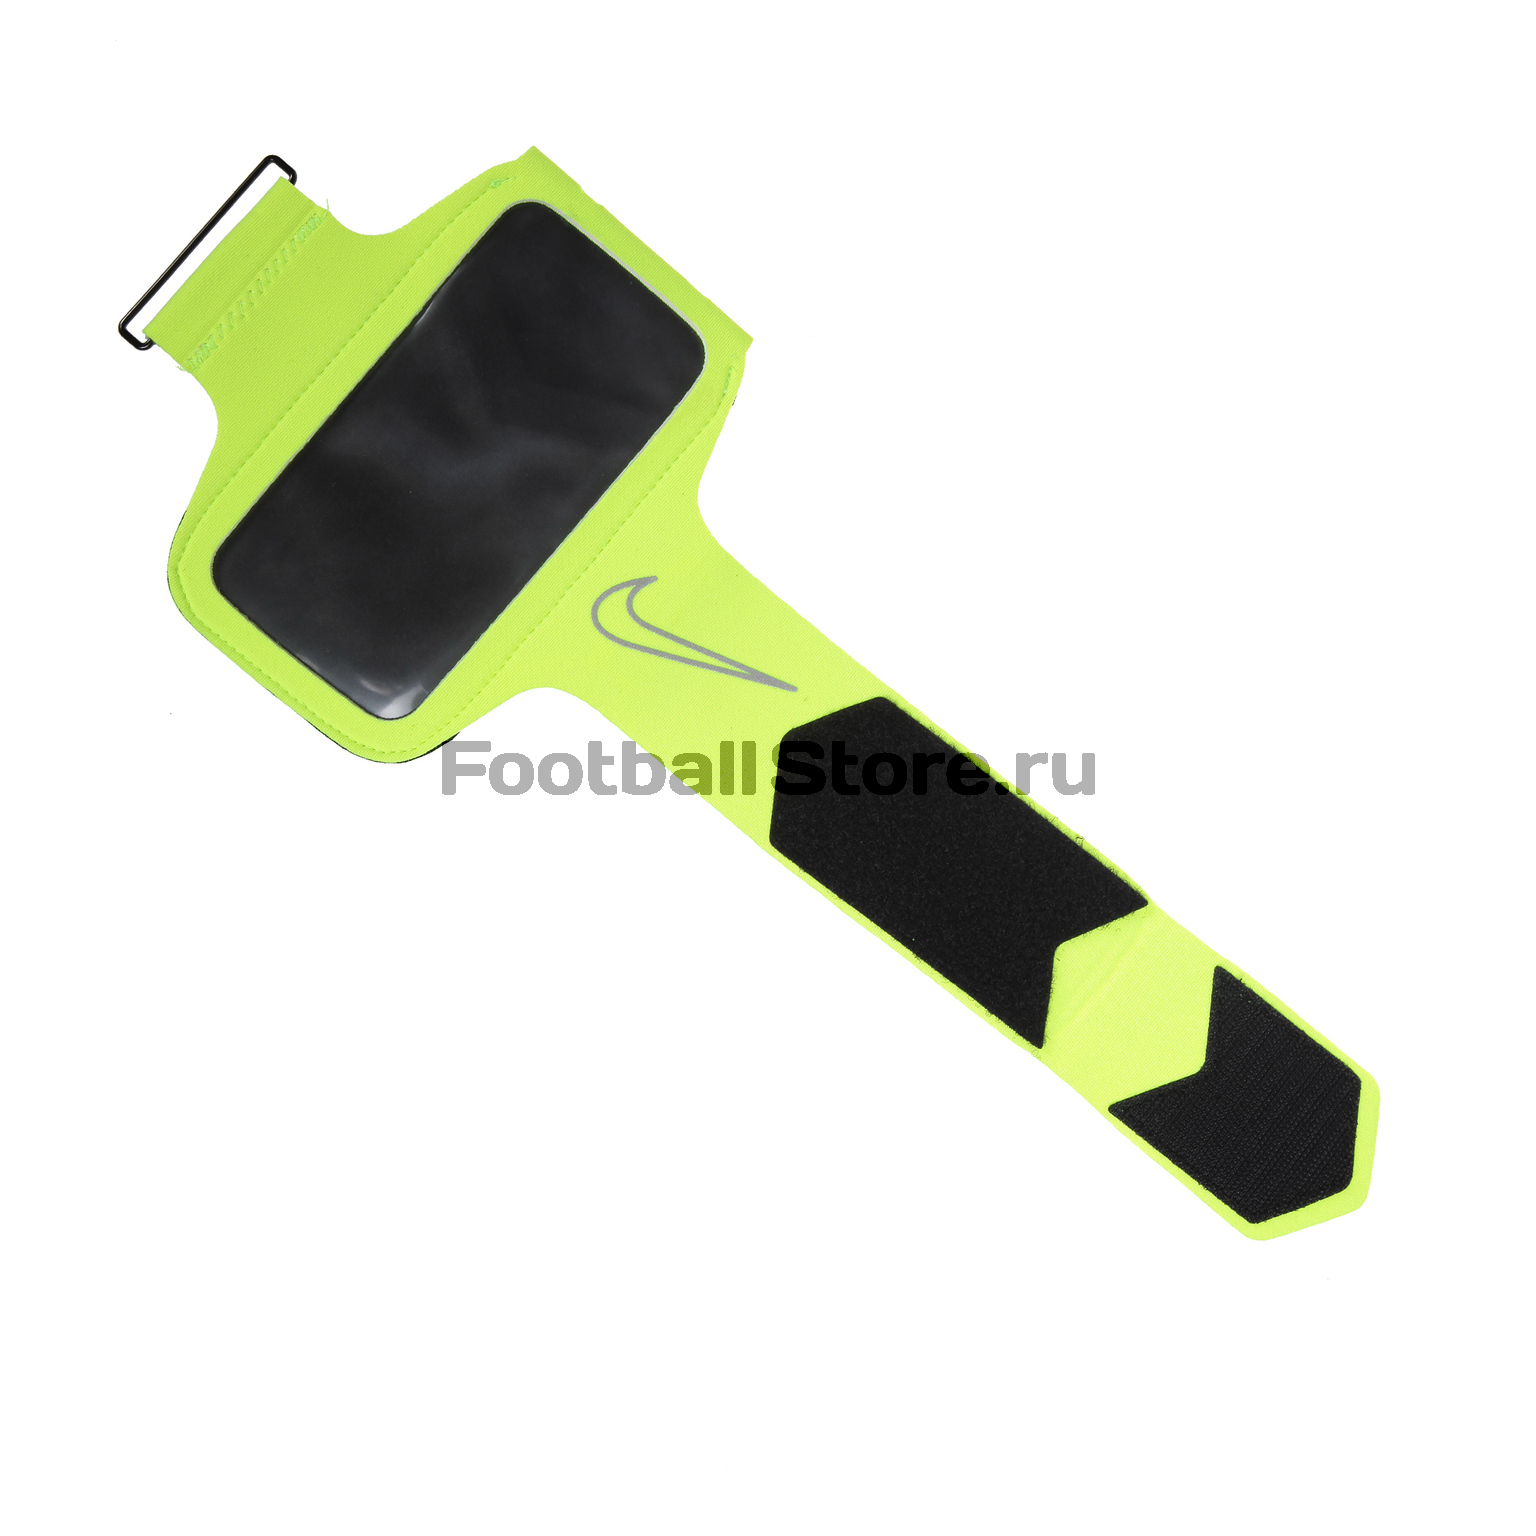 Чехол для Iphone 5/5S на руку Nike Lightweight Arm Band 2.0 N.RN.43.715.OS комплект носков nike 3ppk lightweight сrew sx4704 901